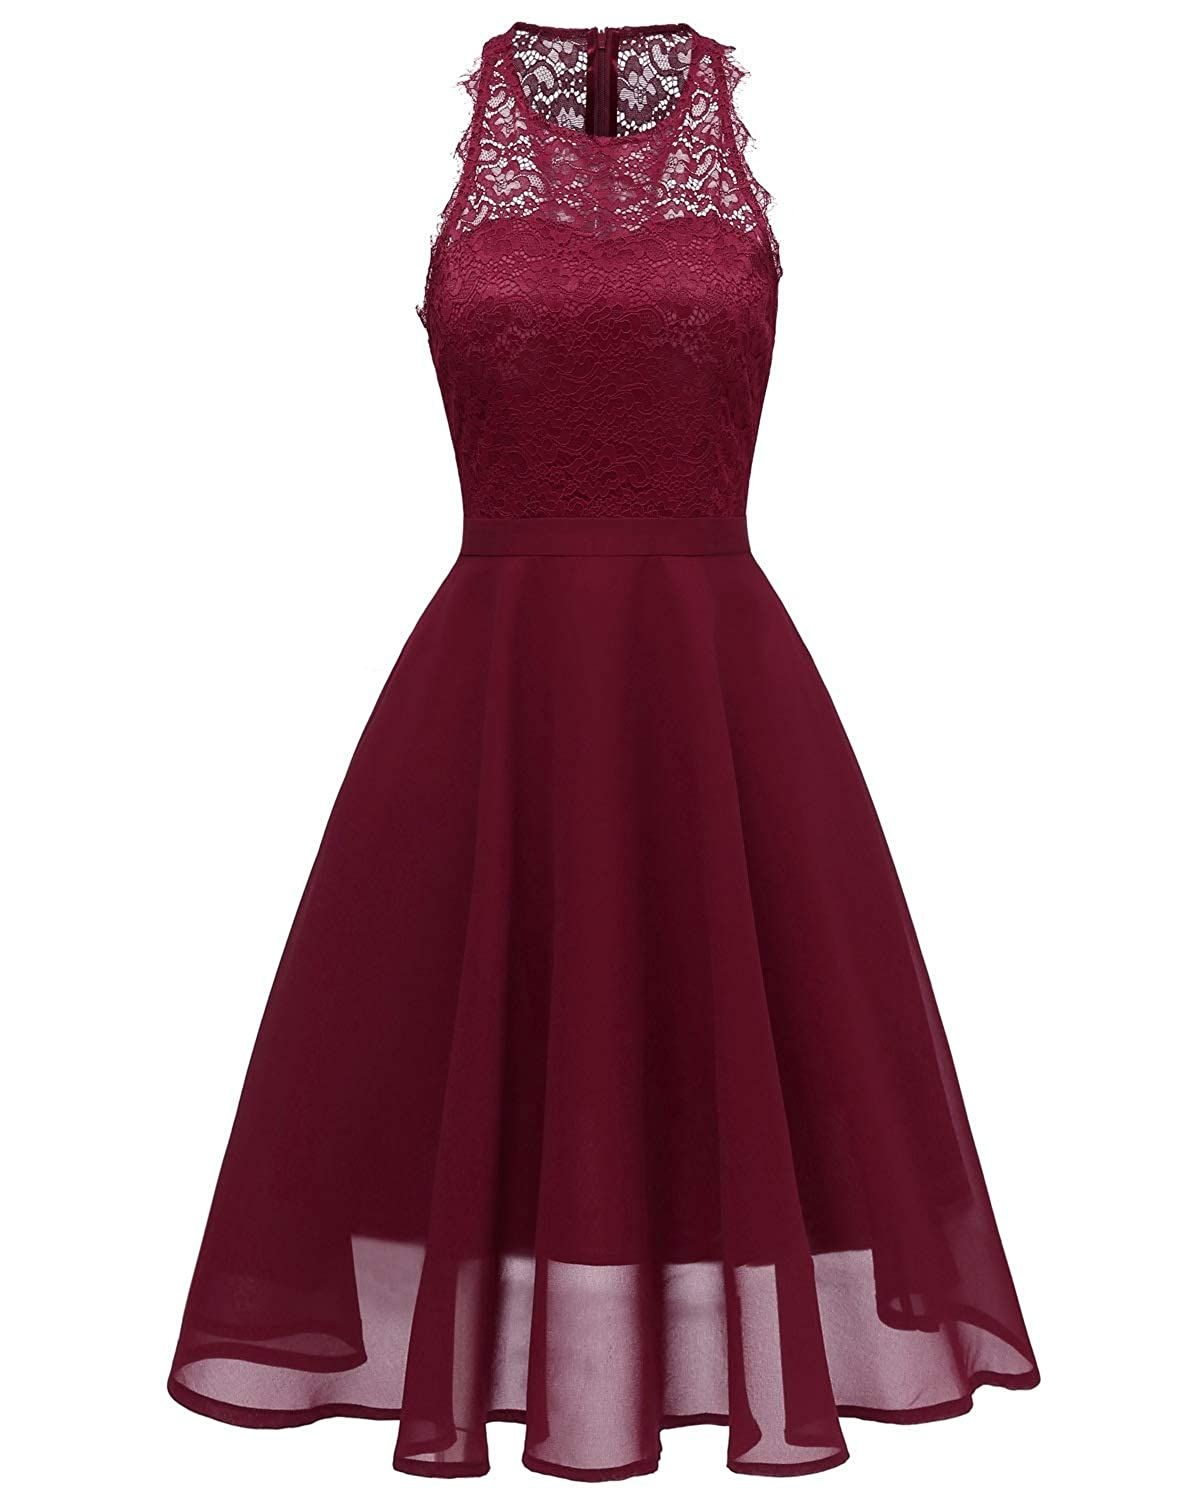 Wine Red Zooka Vintage Floral Lace Off Shoulder Pink Dress Women High Low Hem Midi Party Robe